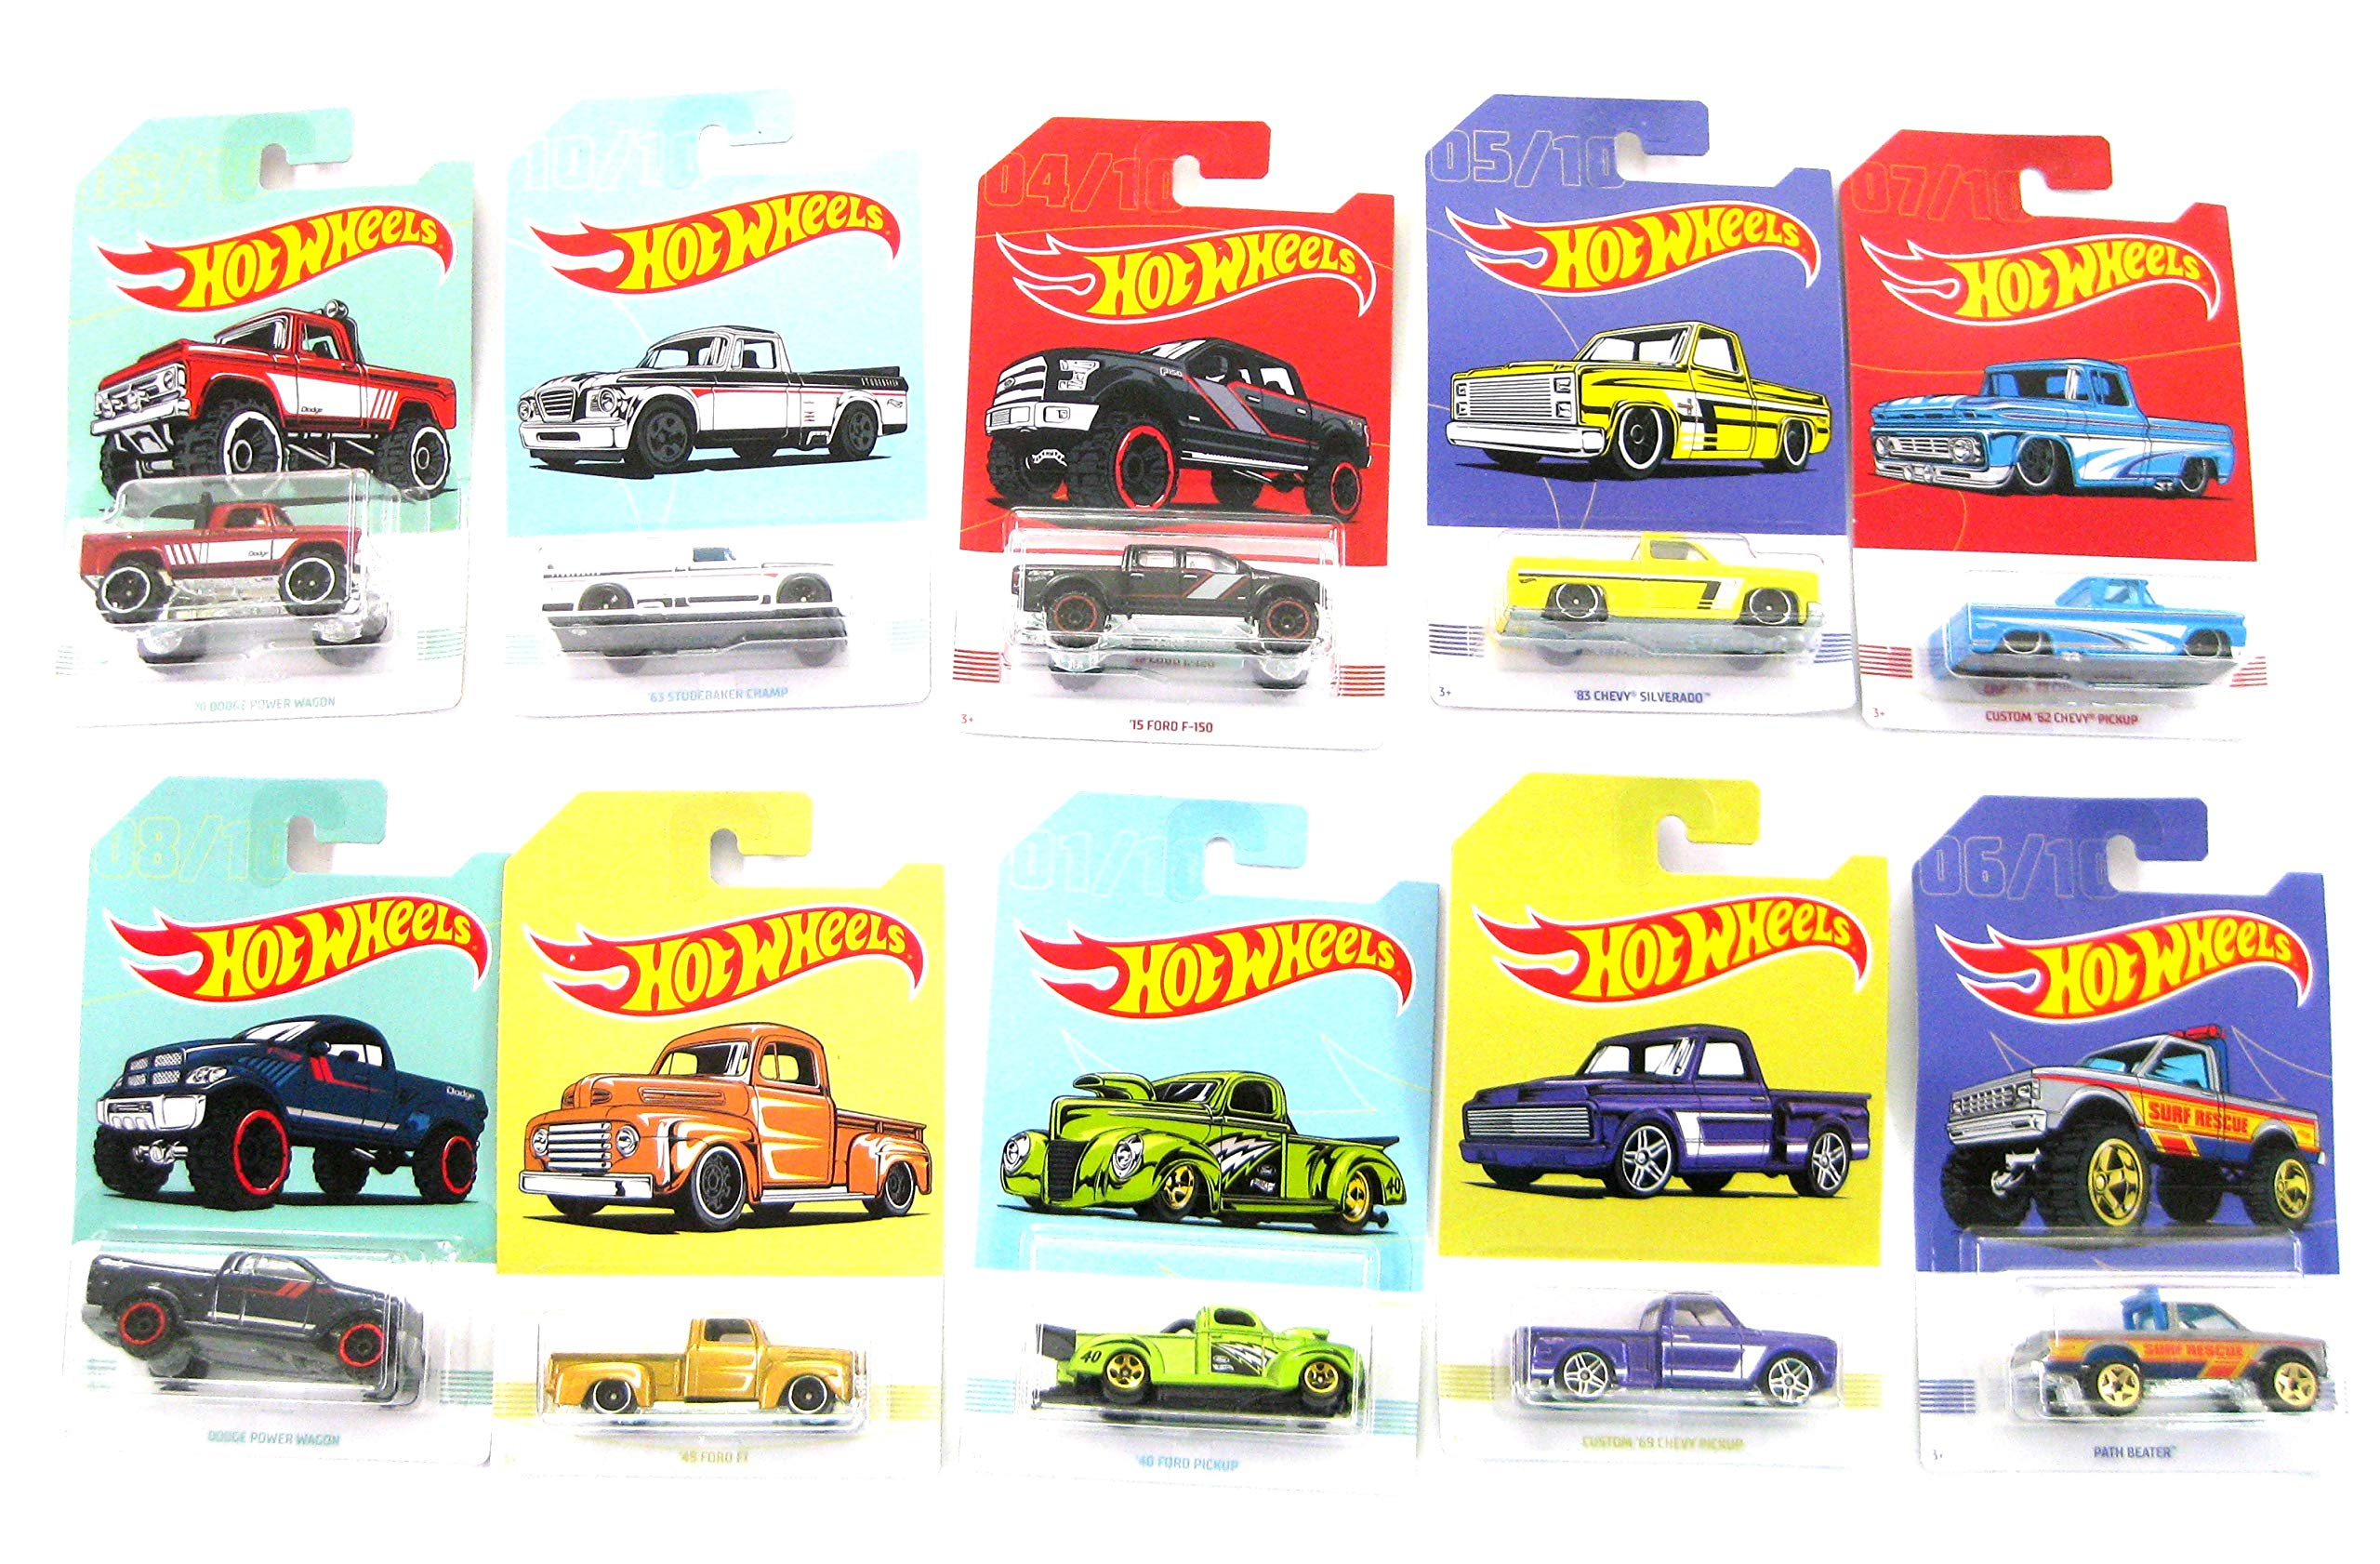 Hot Wheels GBC09-965A Premium Pick Ups set of 10 Cars New